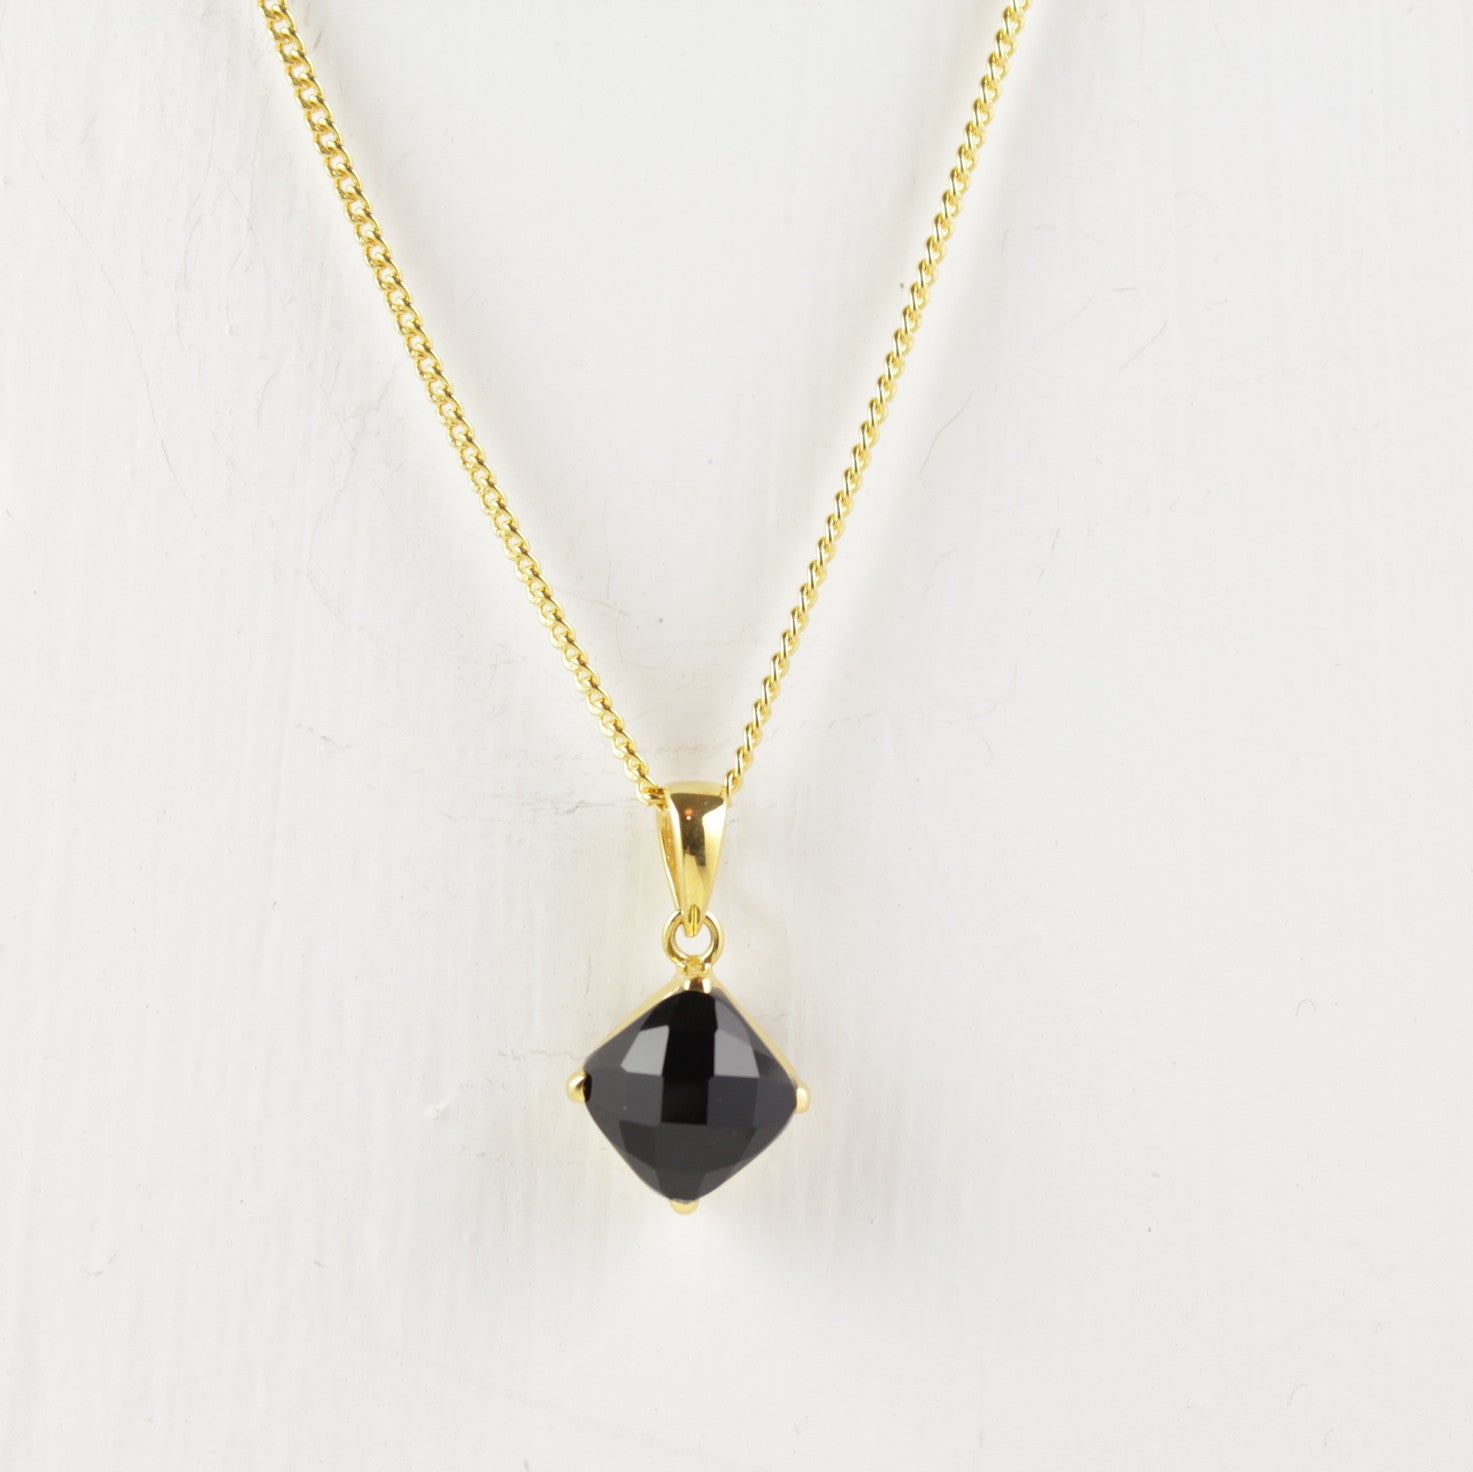 necklace studio necklaceblack gold long add gemstone onyx black co simple neck magpie product layering